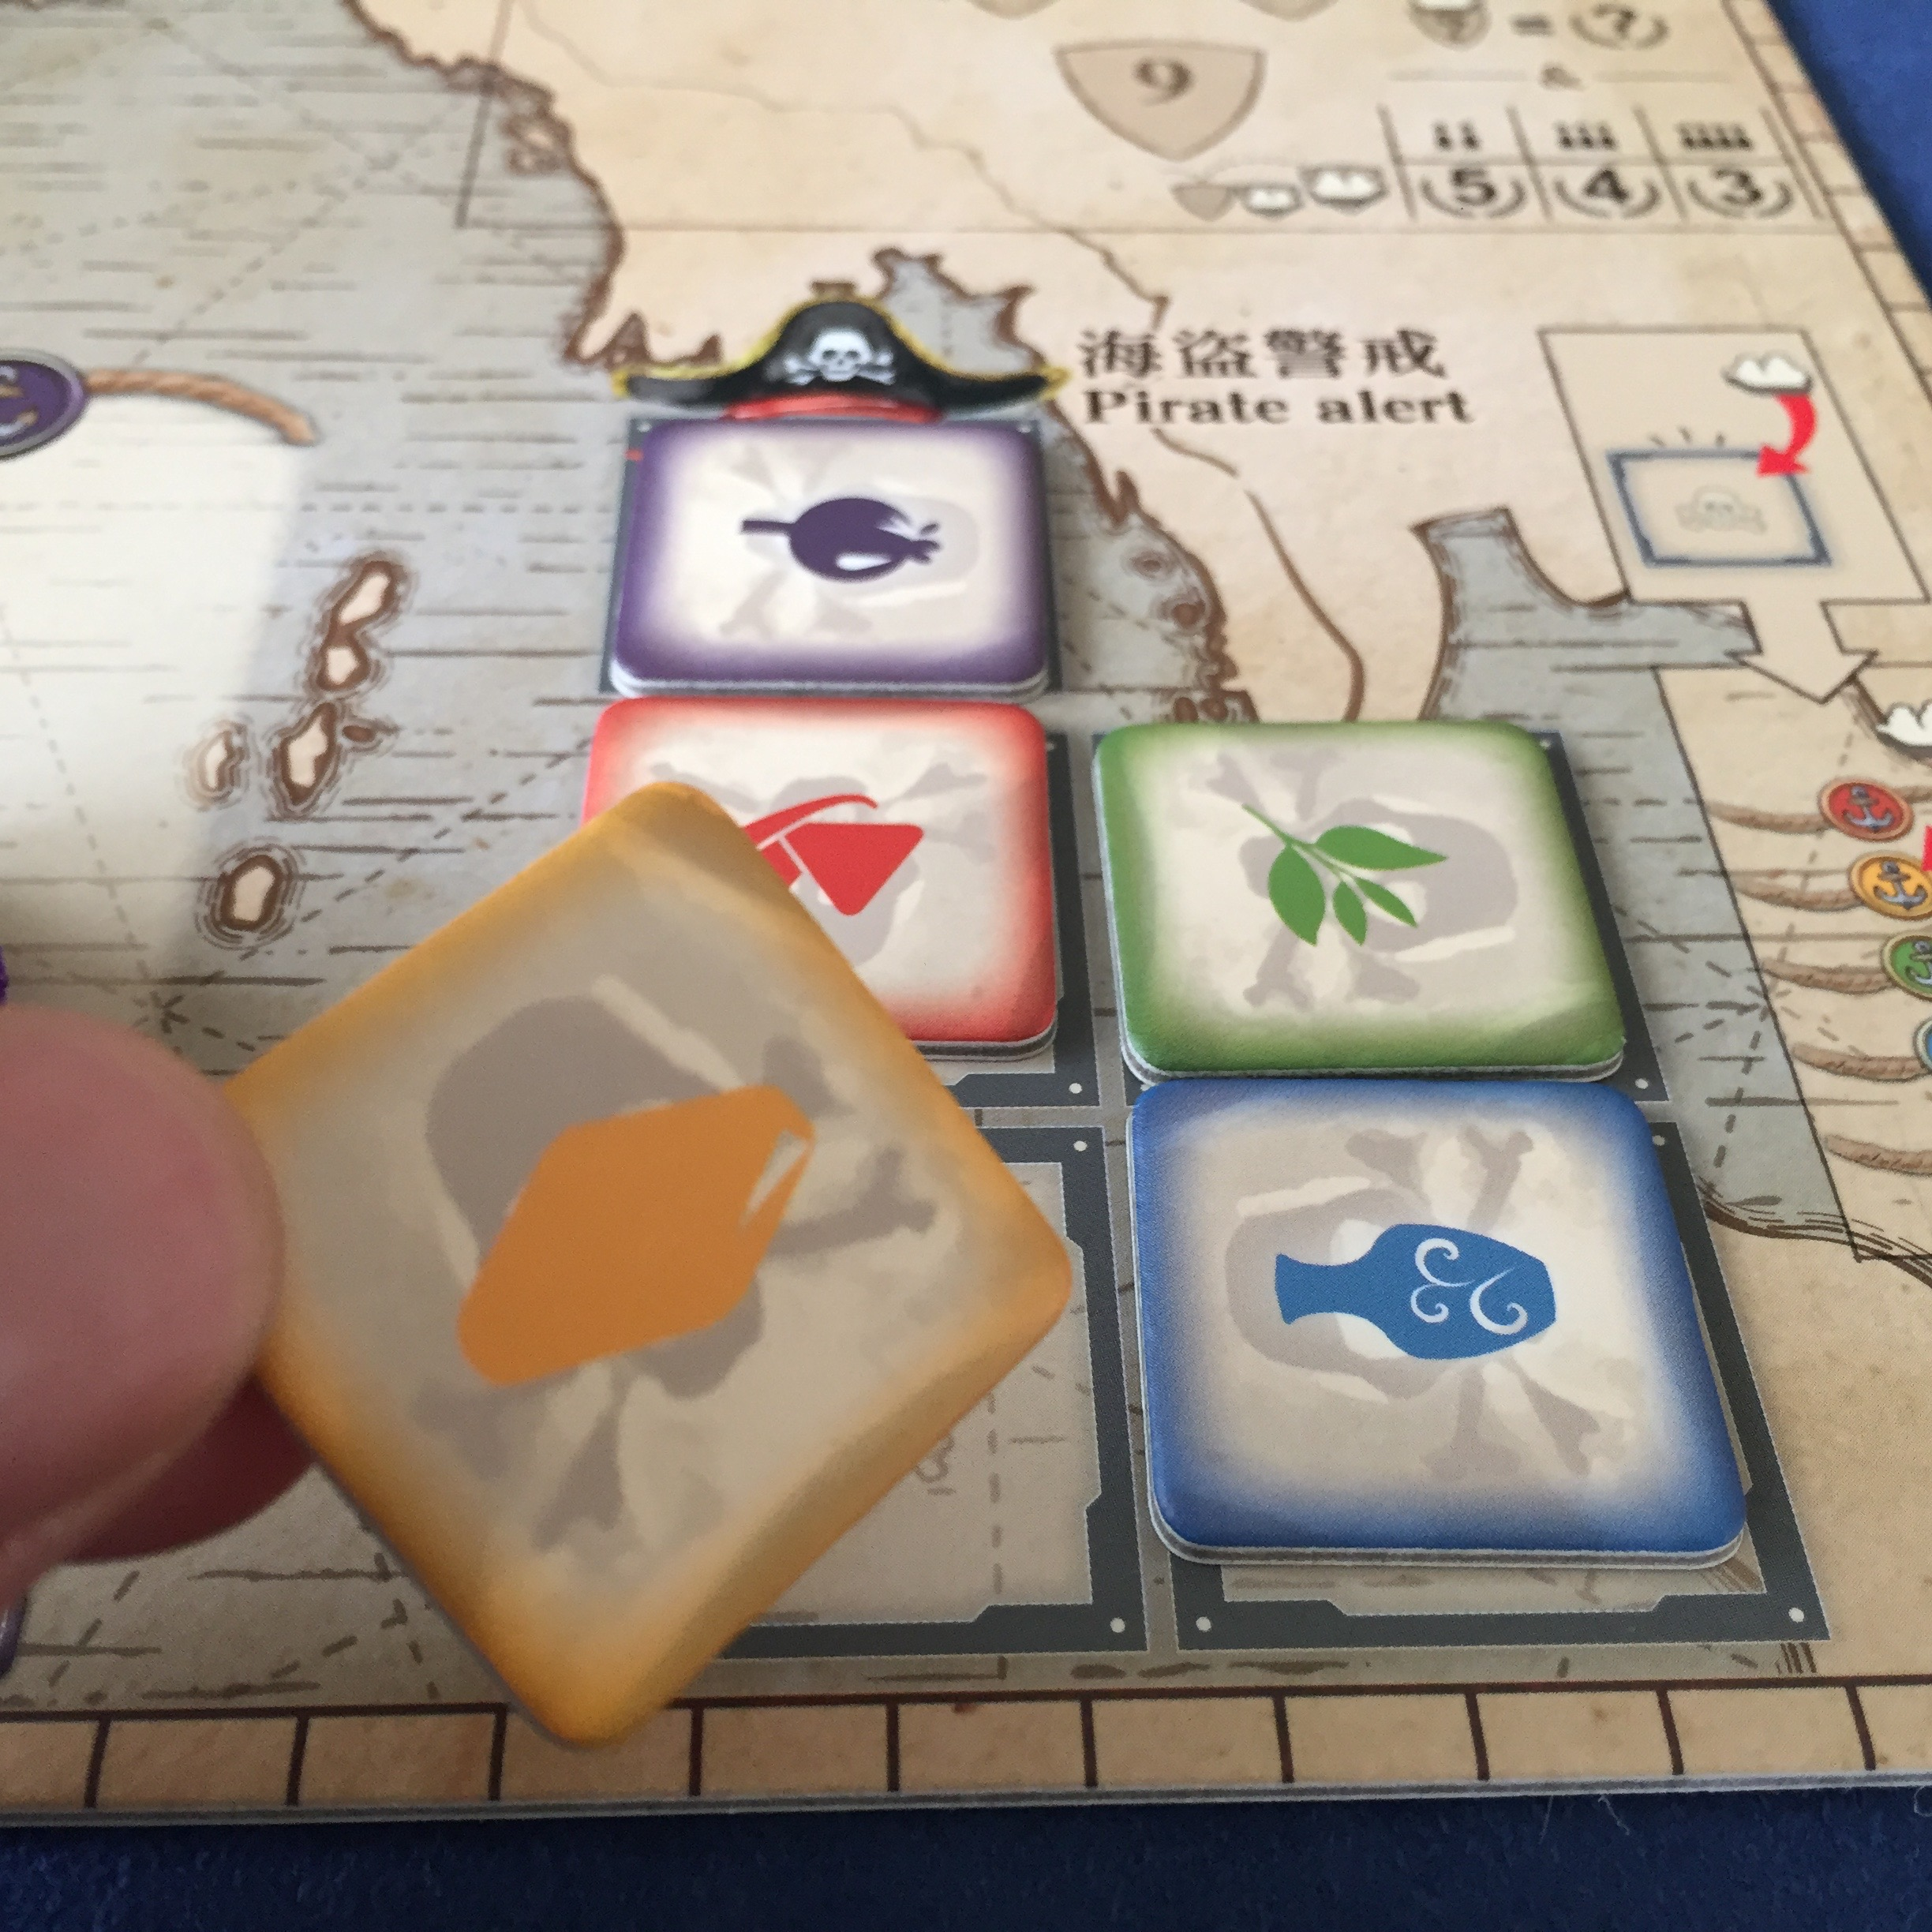 7A. Pass. Spend one action to pass, then take one of these raid markers. At the beginning of the next round, gain a cargo ship from the general supply of the matching good!